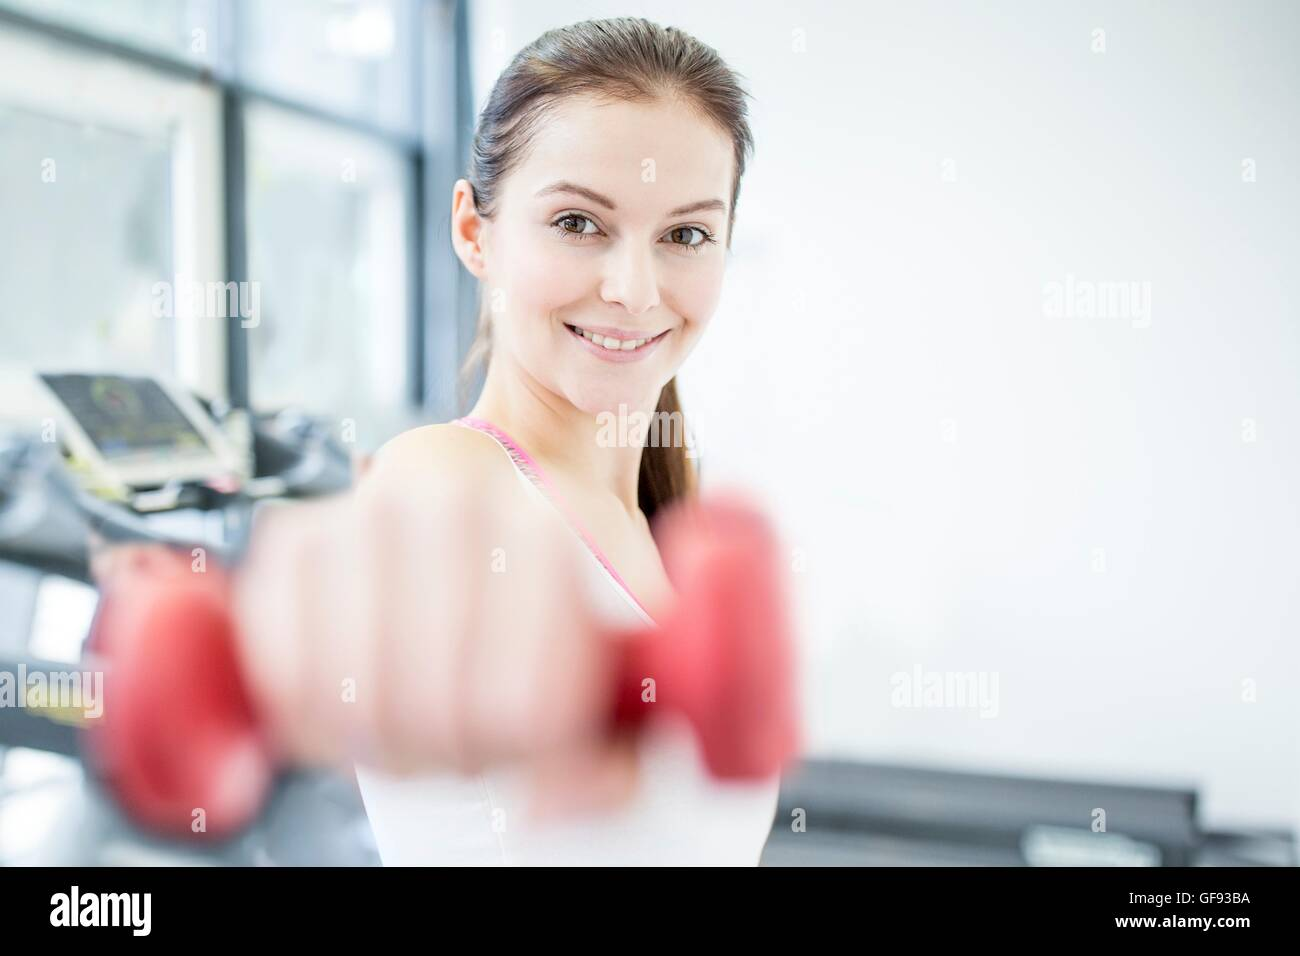 PROPERTY RELEASED. MODEL RELEASED. Smiling young woman working out with dumbbell in gym, portrait. - Stock Image